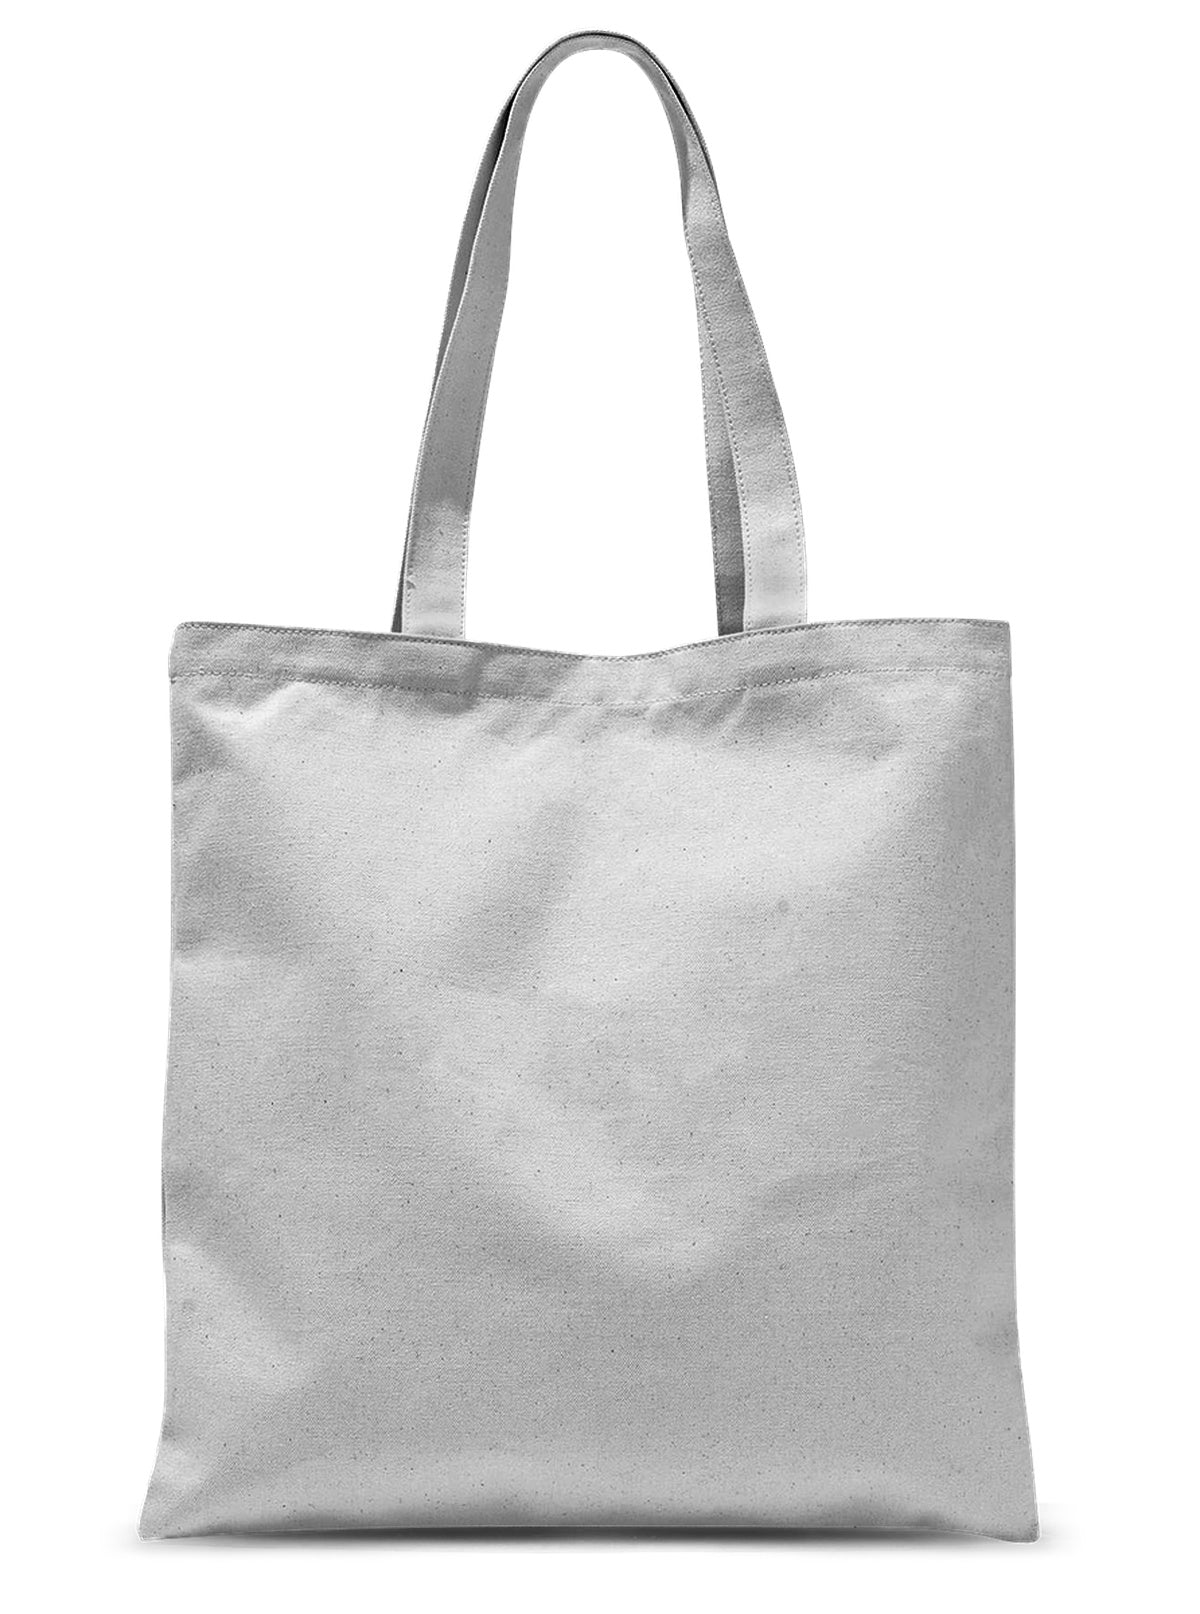 Dressage Sublimation Tote Bag